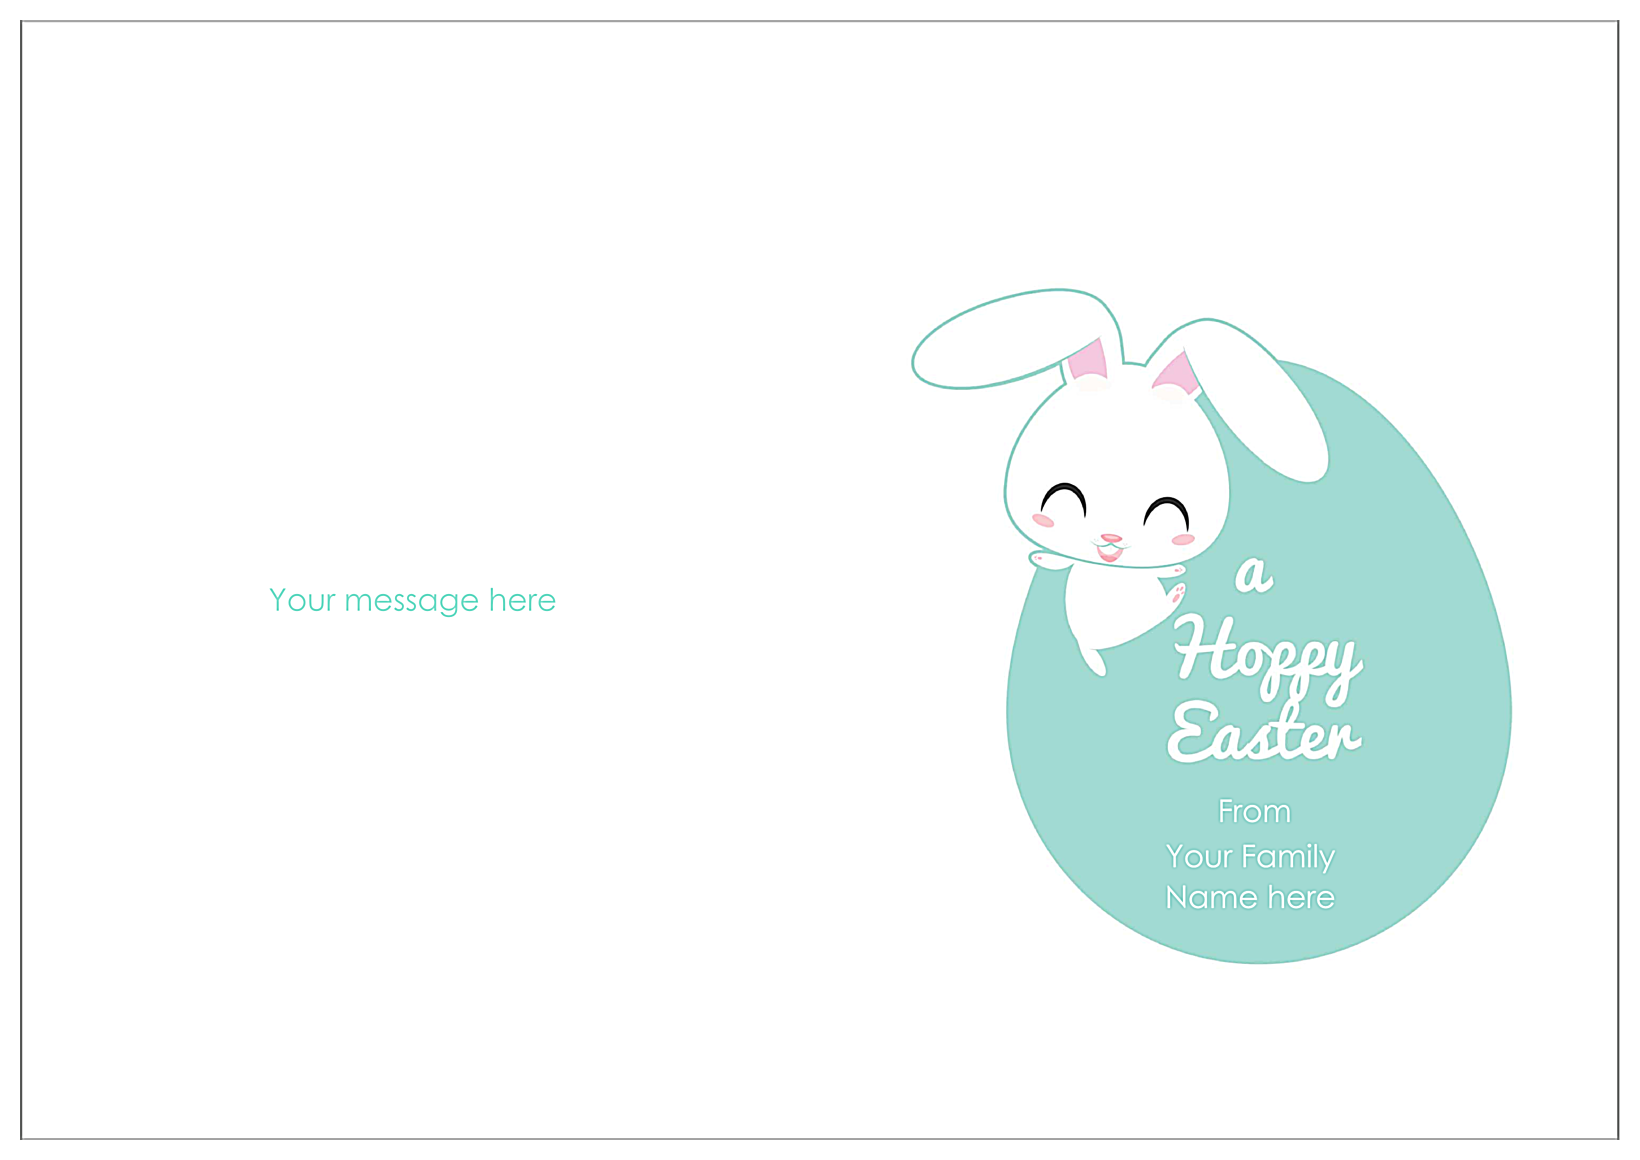 Hoppy Easter back - Greeting Cards Maker